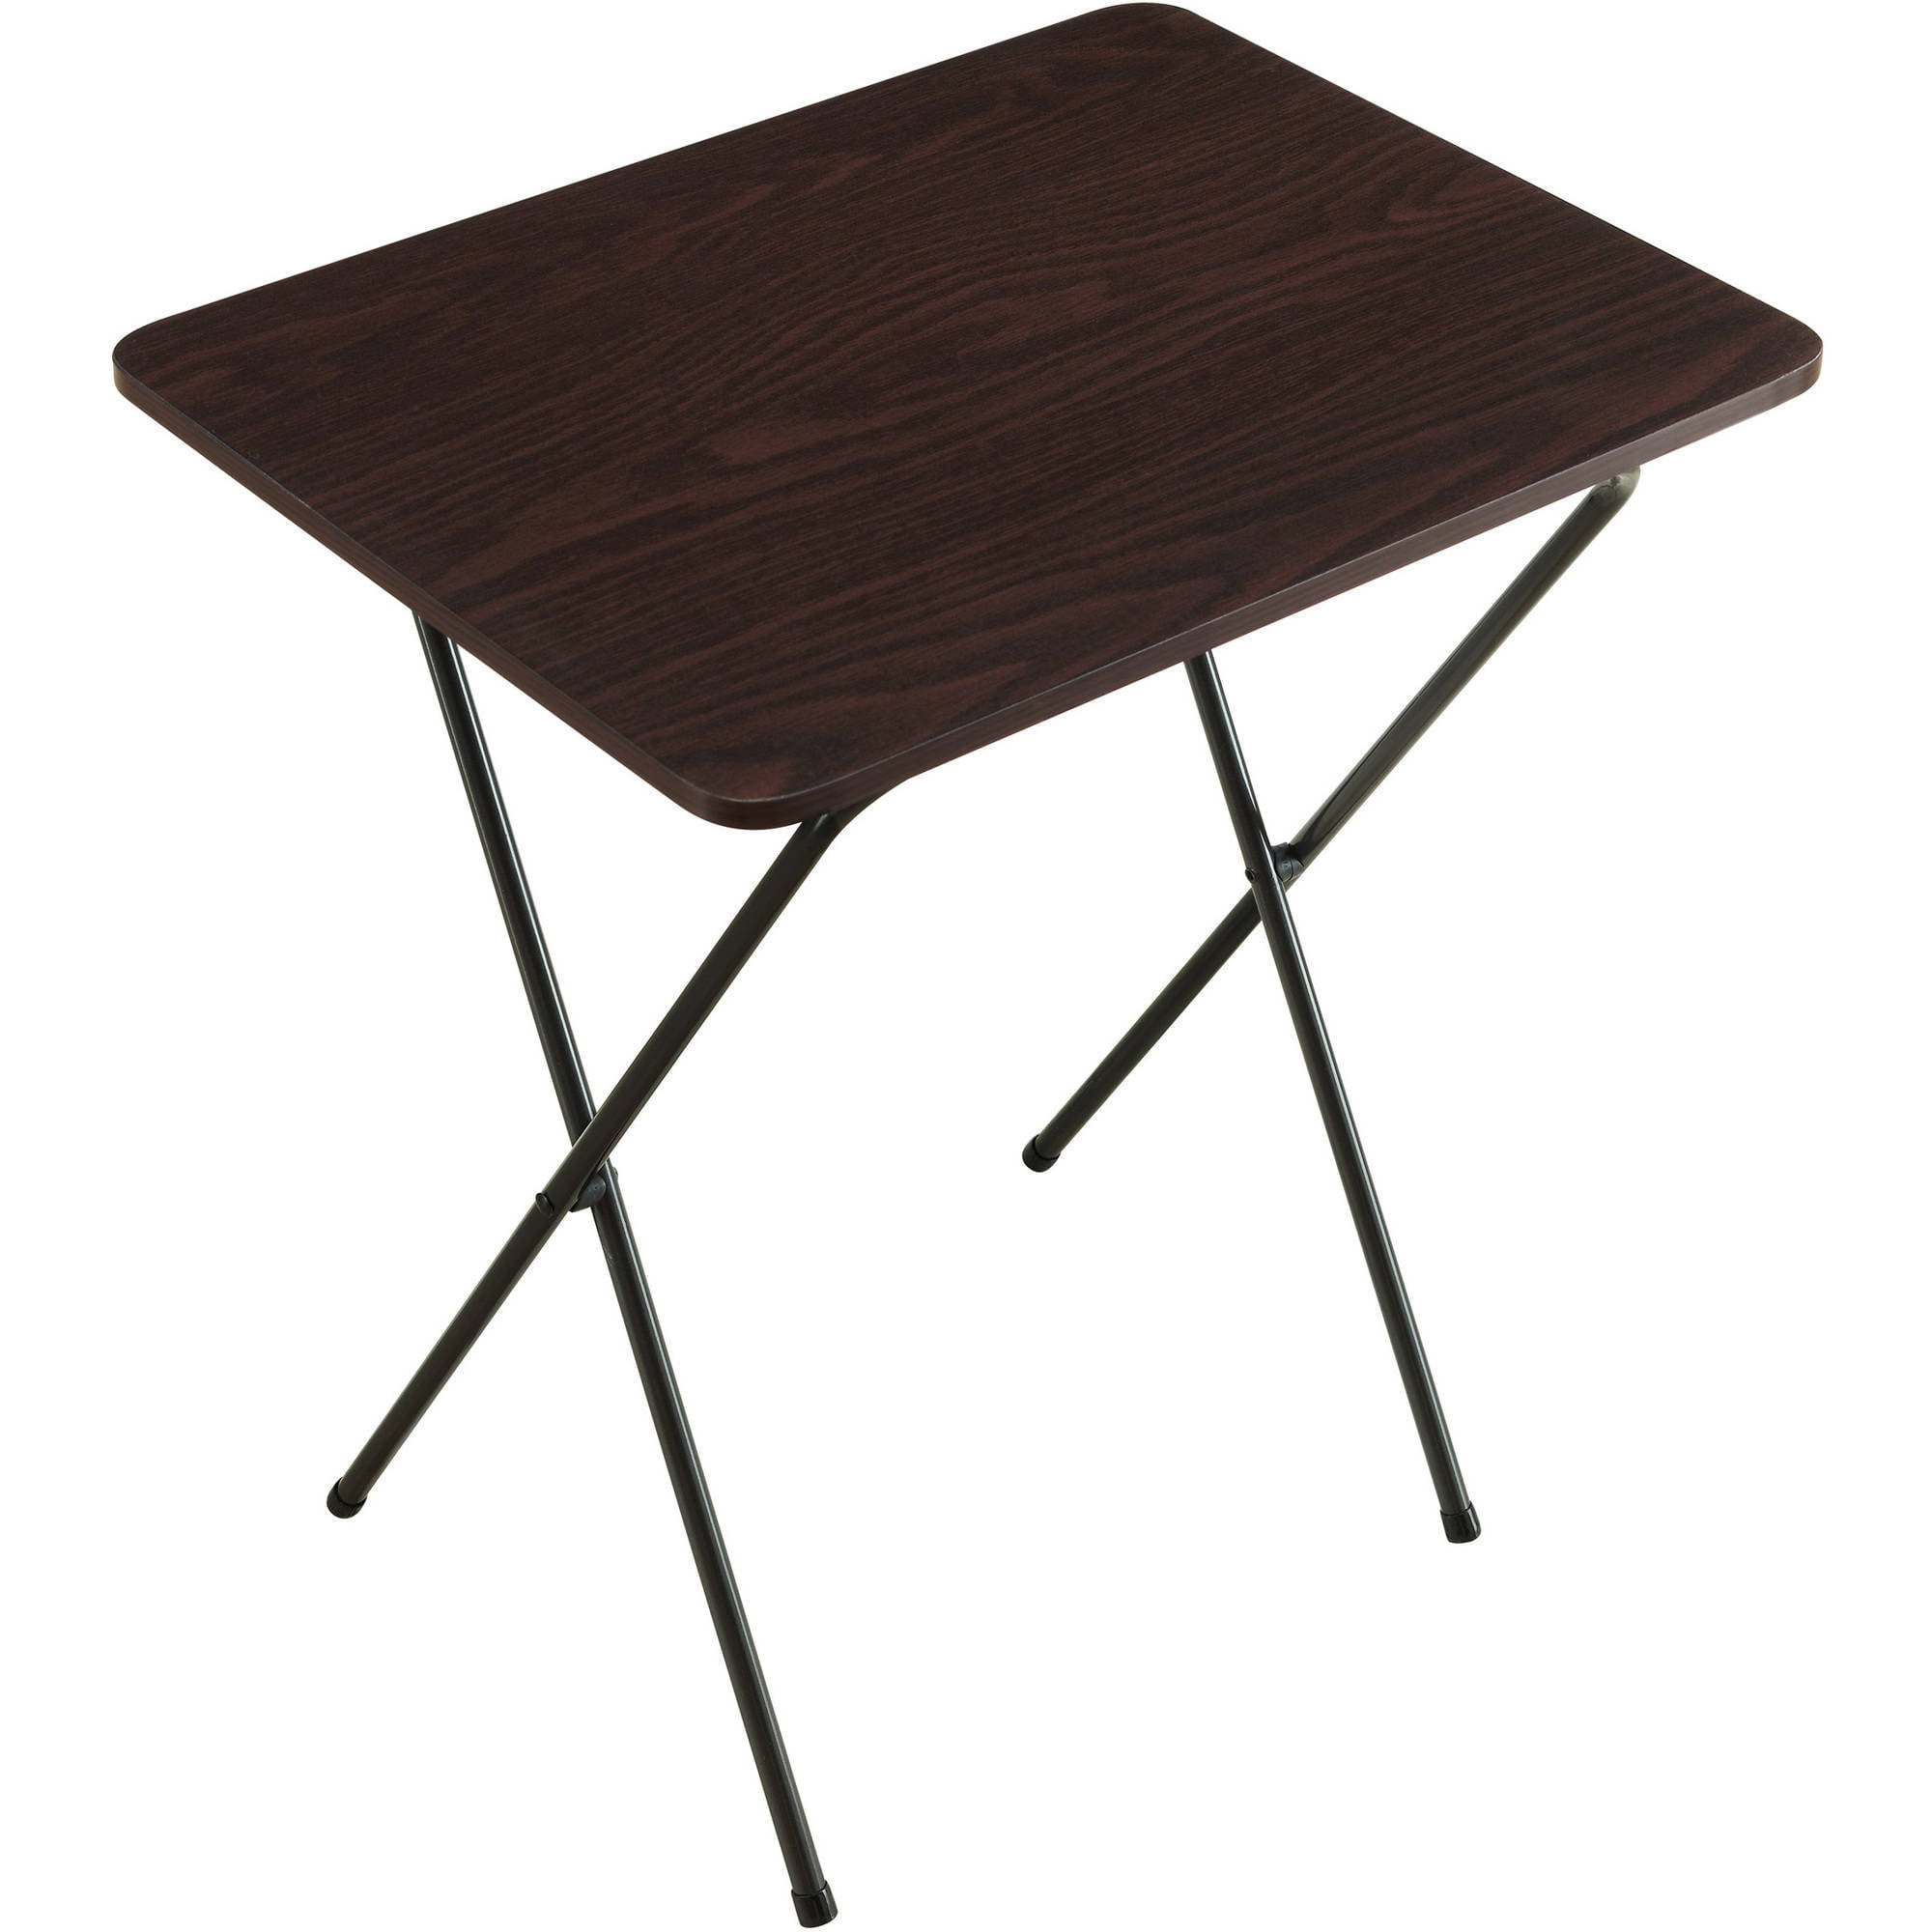 Table Walmart: Mainstays Espresso Folding Tray Table